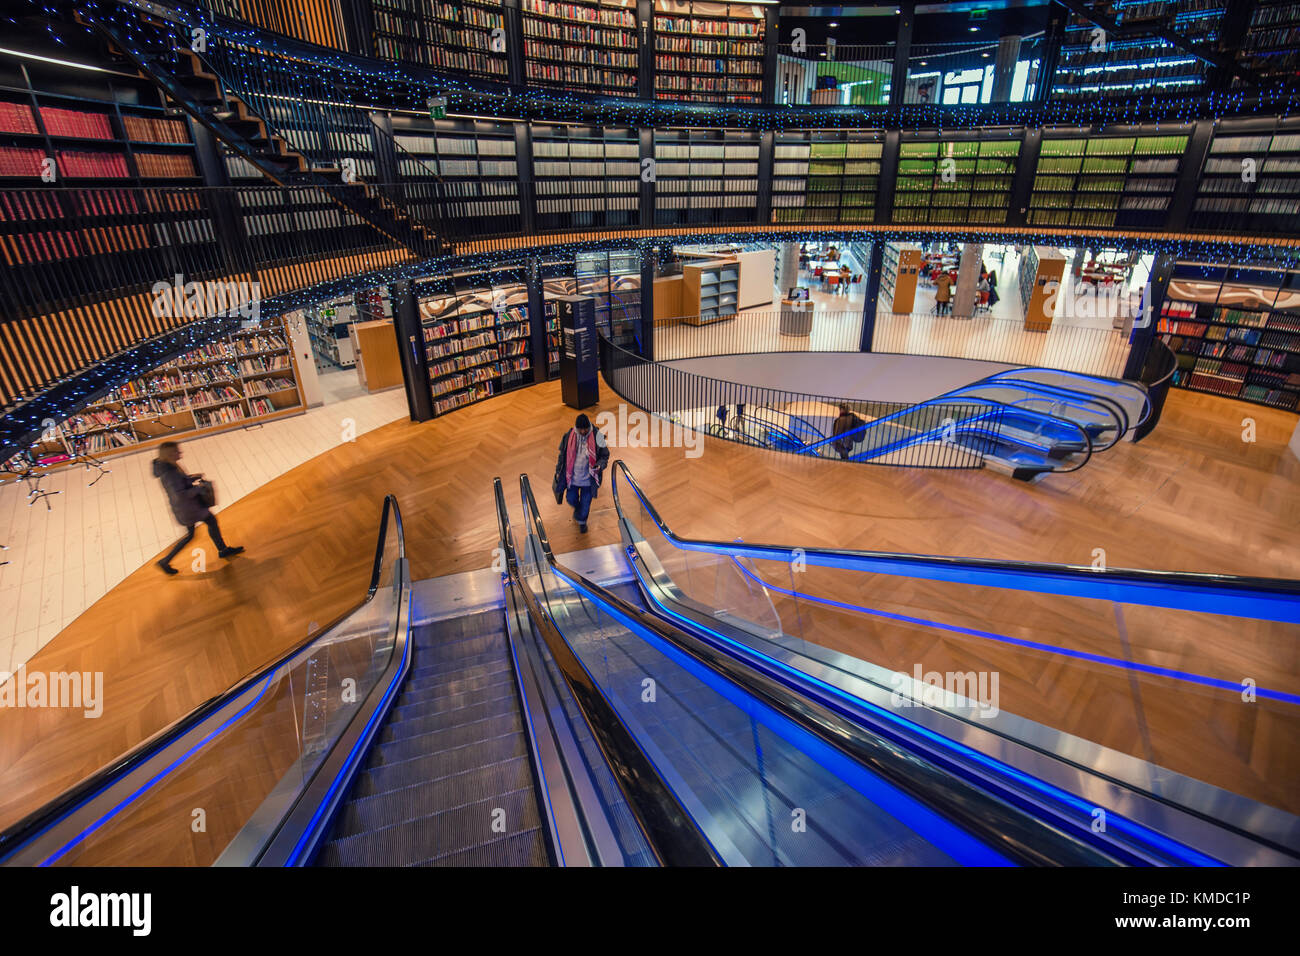 BIRMINGHAM, UK - DECEMBER 01, 2017: Modern design of public library Stock Photo